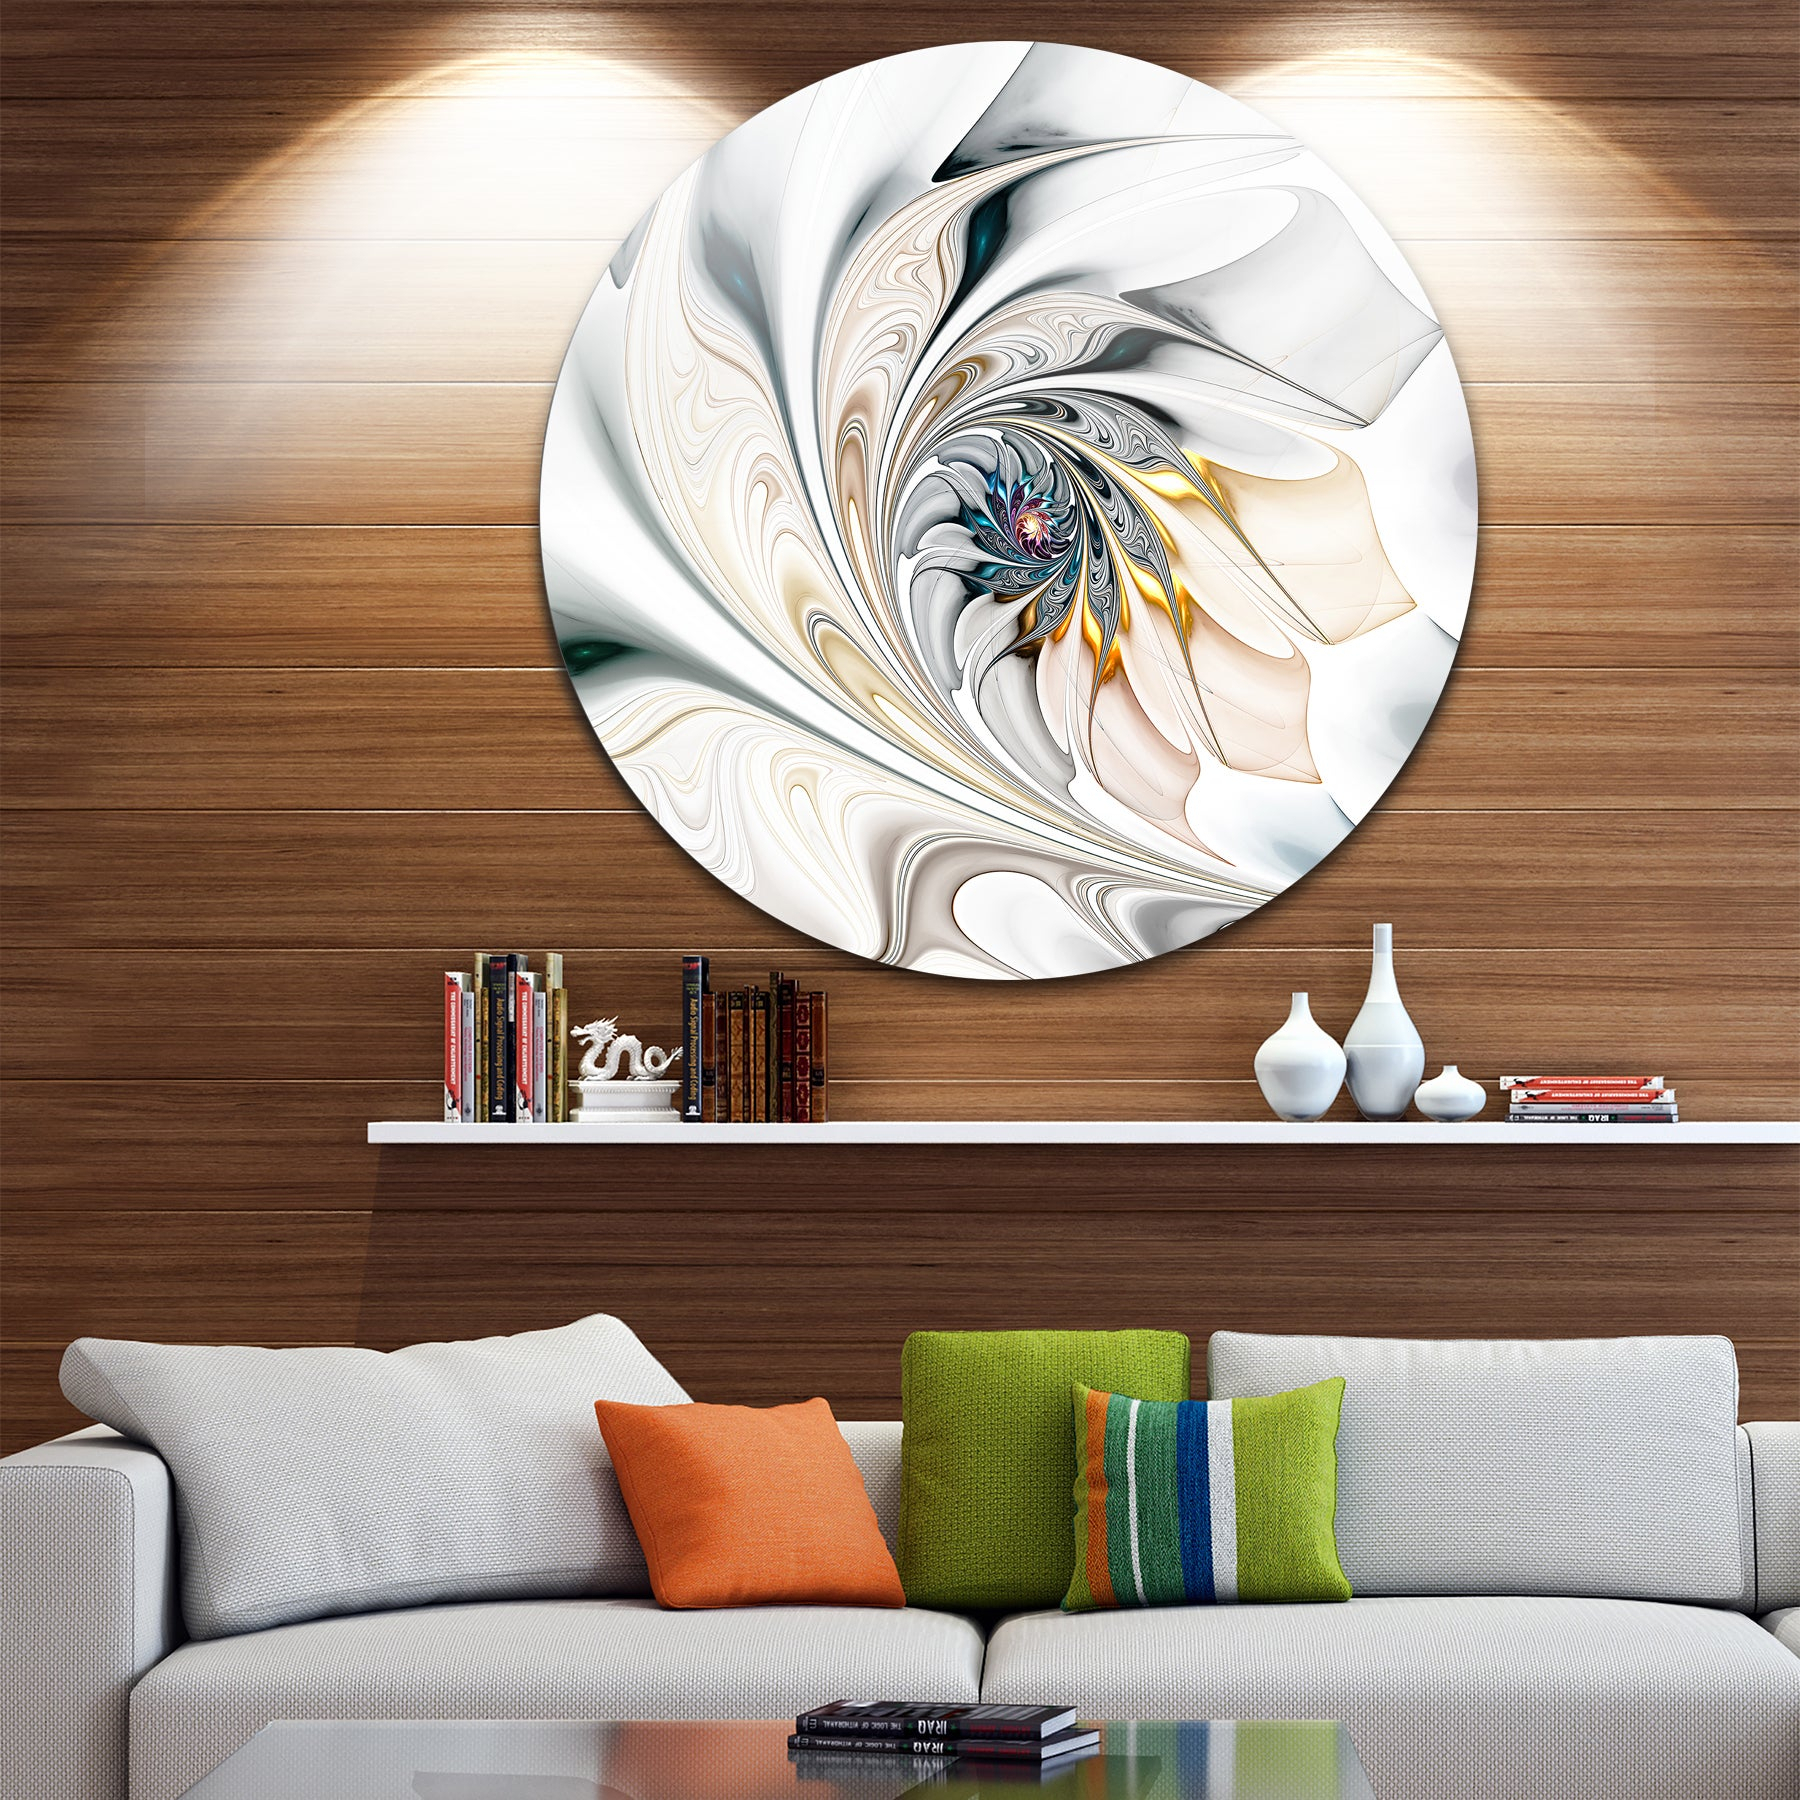 Find Great Art Gallery Deals Shopping At Overstock For 2 Piece Multiple Layer Metal Flower Wall Decor Sets (View 5 of 20)